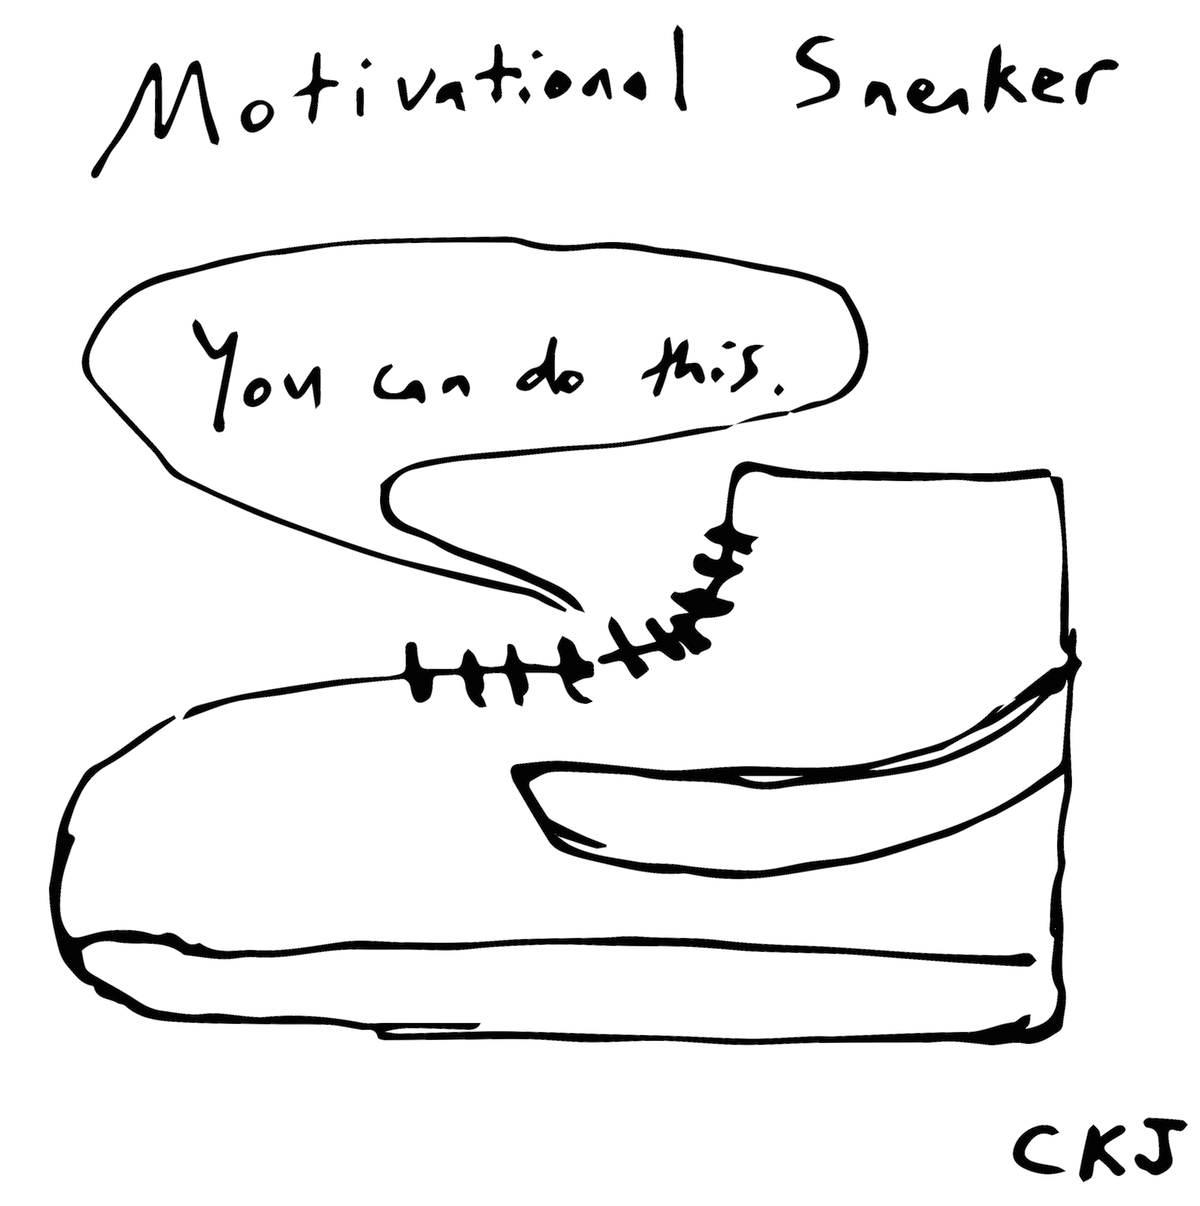 motivational sneaker.png